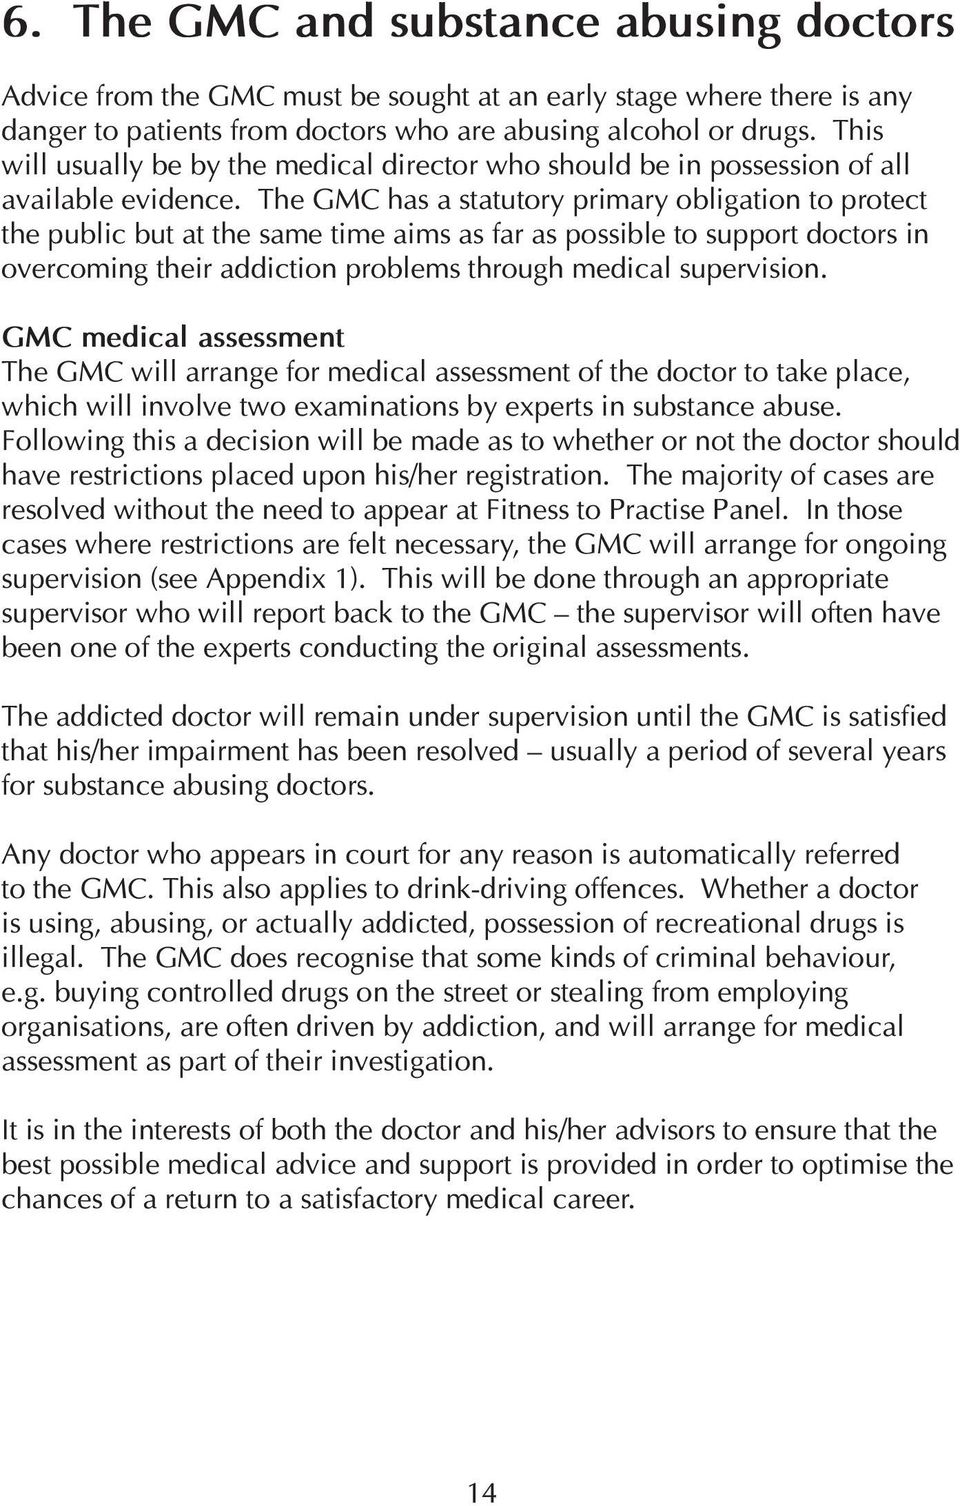 The GMC has a statutory primary obligation to protect the public but at the same time aims as far as possible to support doctors in overcoming their addiction problems through medical supervision.